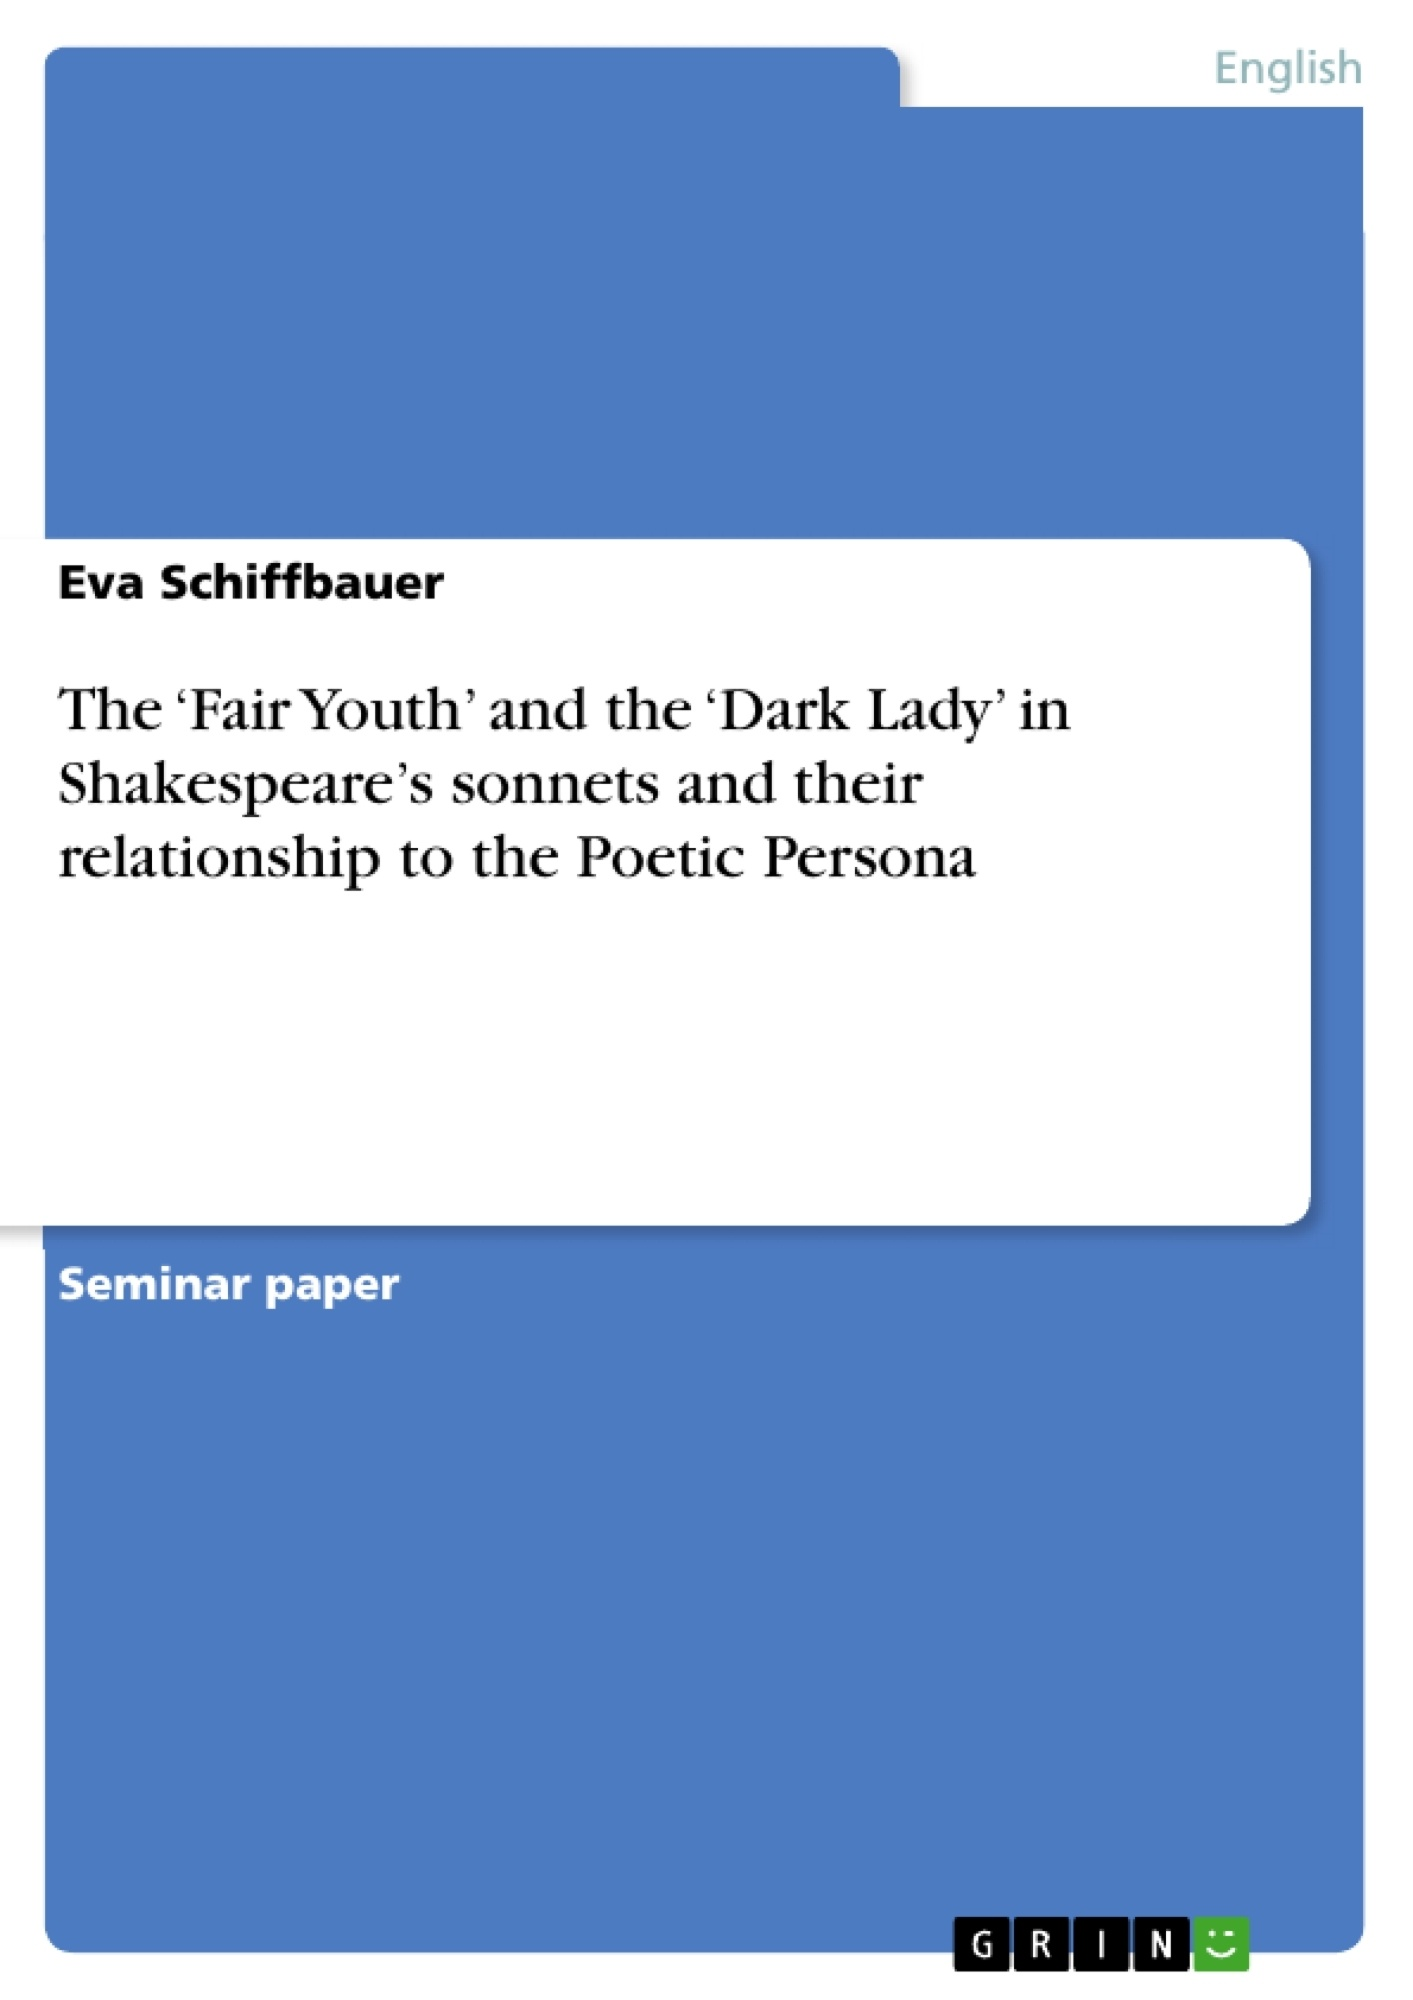 the fair youth and the dark lady in shakespeare s sonnets and  upload your own papers earn money and win an iphone x